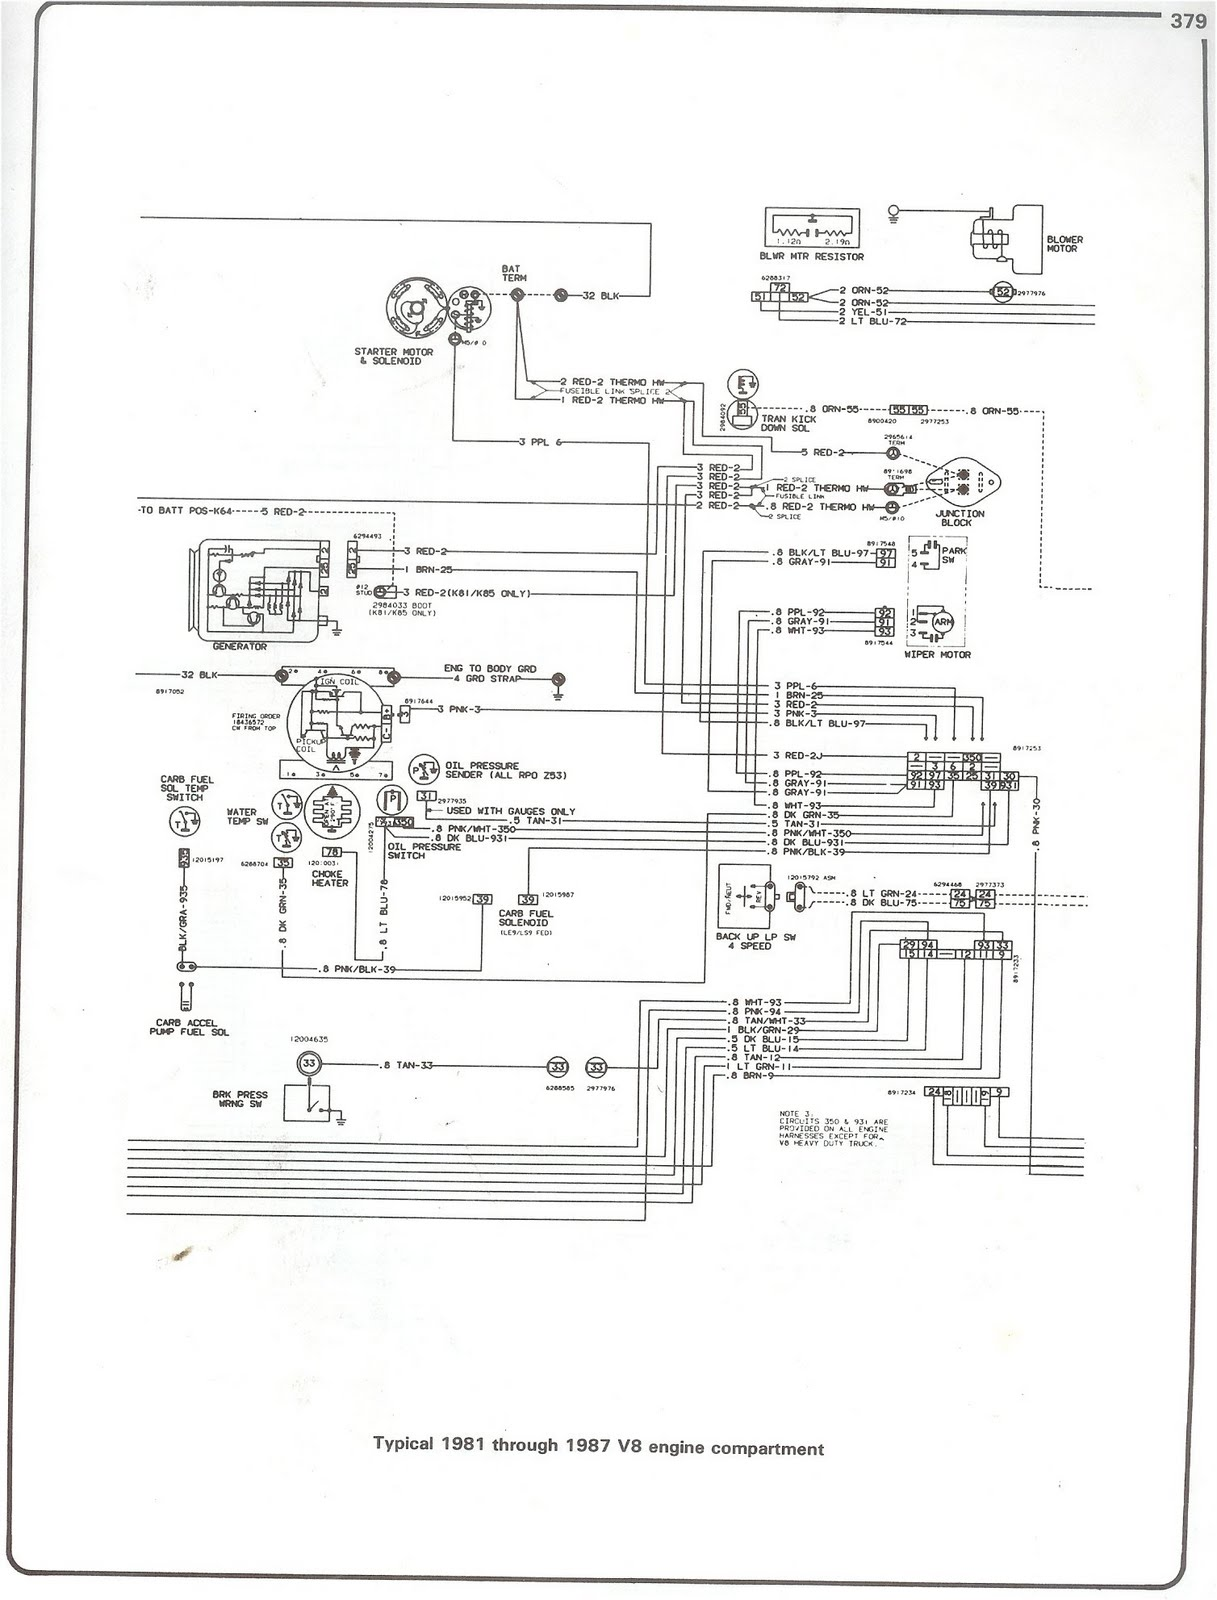 medium resolution of 81 chevy c10 wiring diagram wiring diagram technicals 81 gmc truck radio wiring diagram